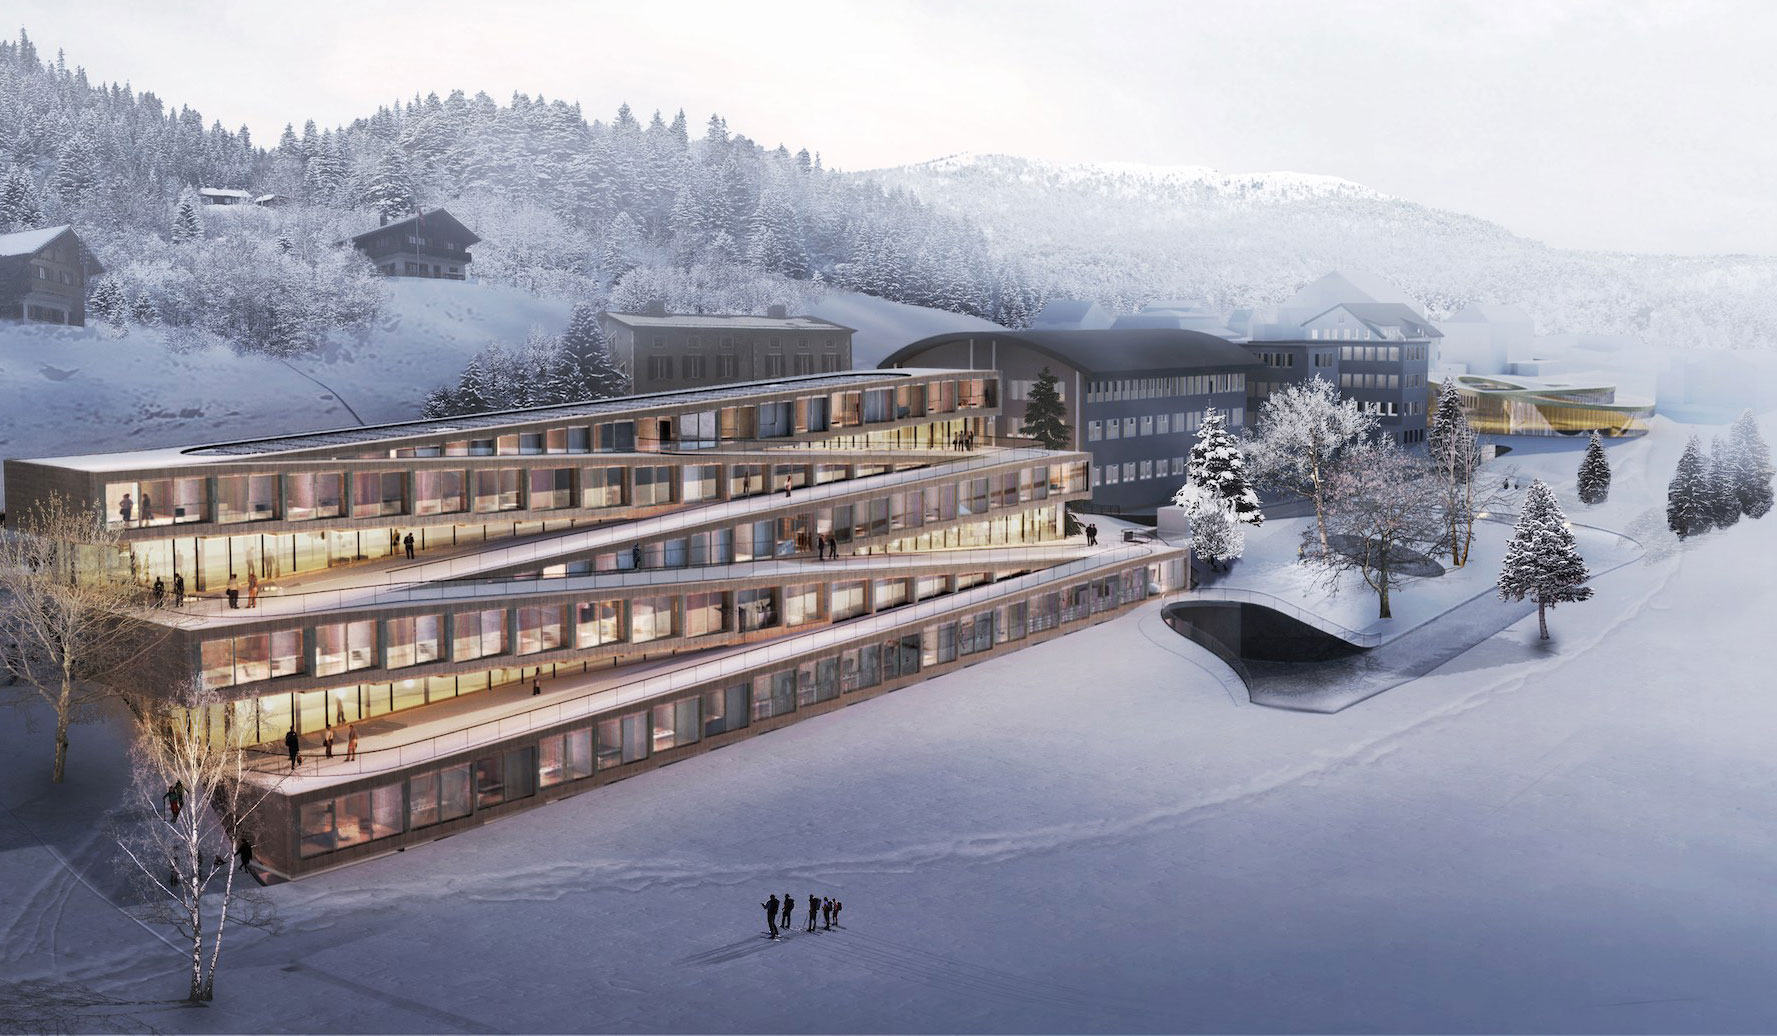 A rendering of the Audemars Piguet Hotel des Horlogers by Bjarke Ingles Group. Image courtesy of BIG.dk